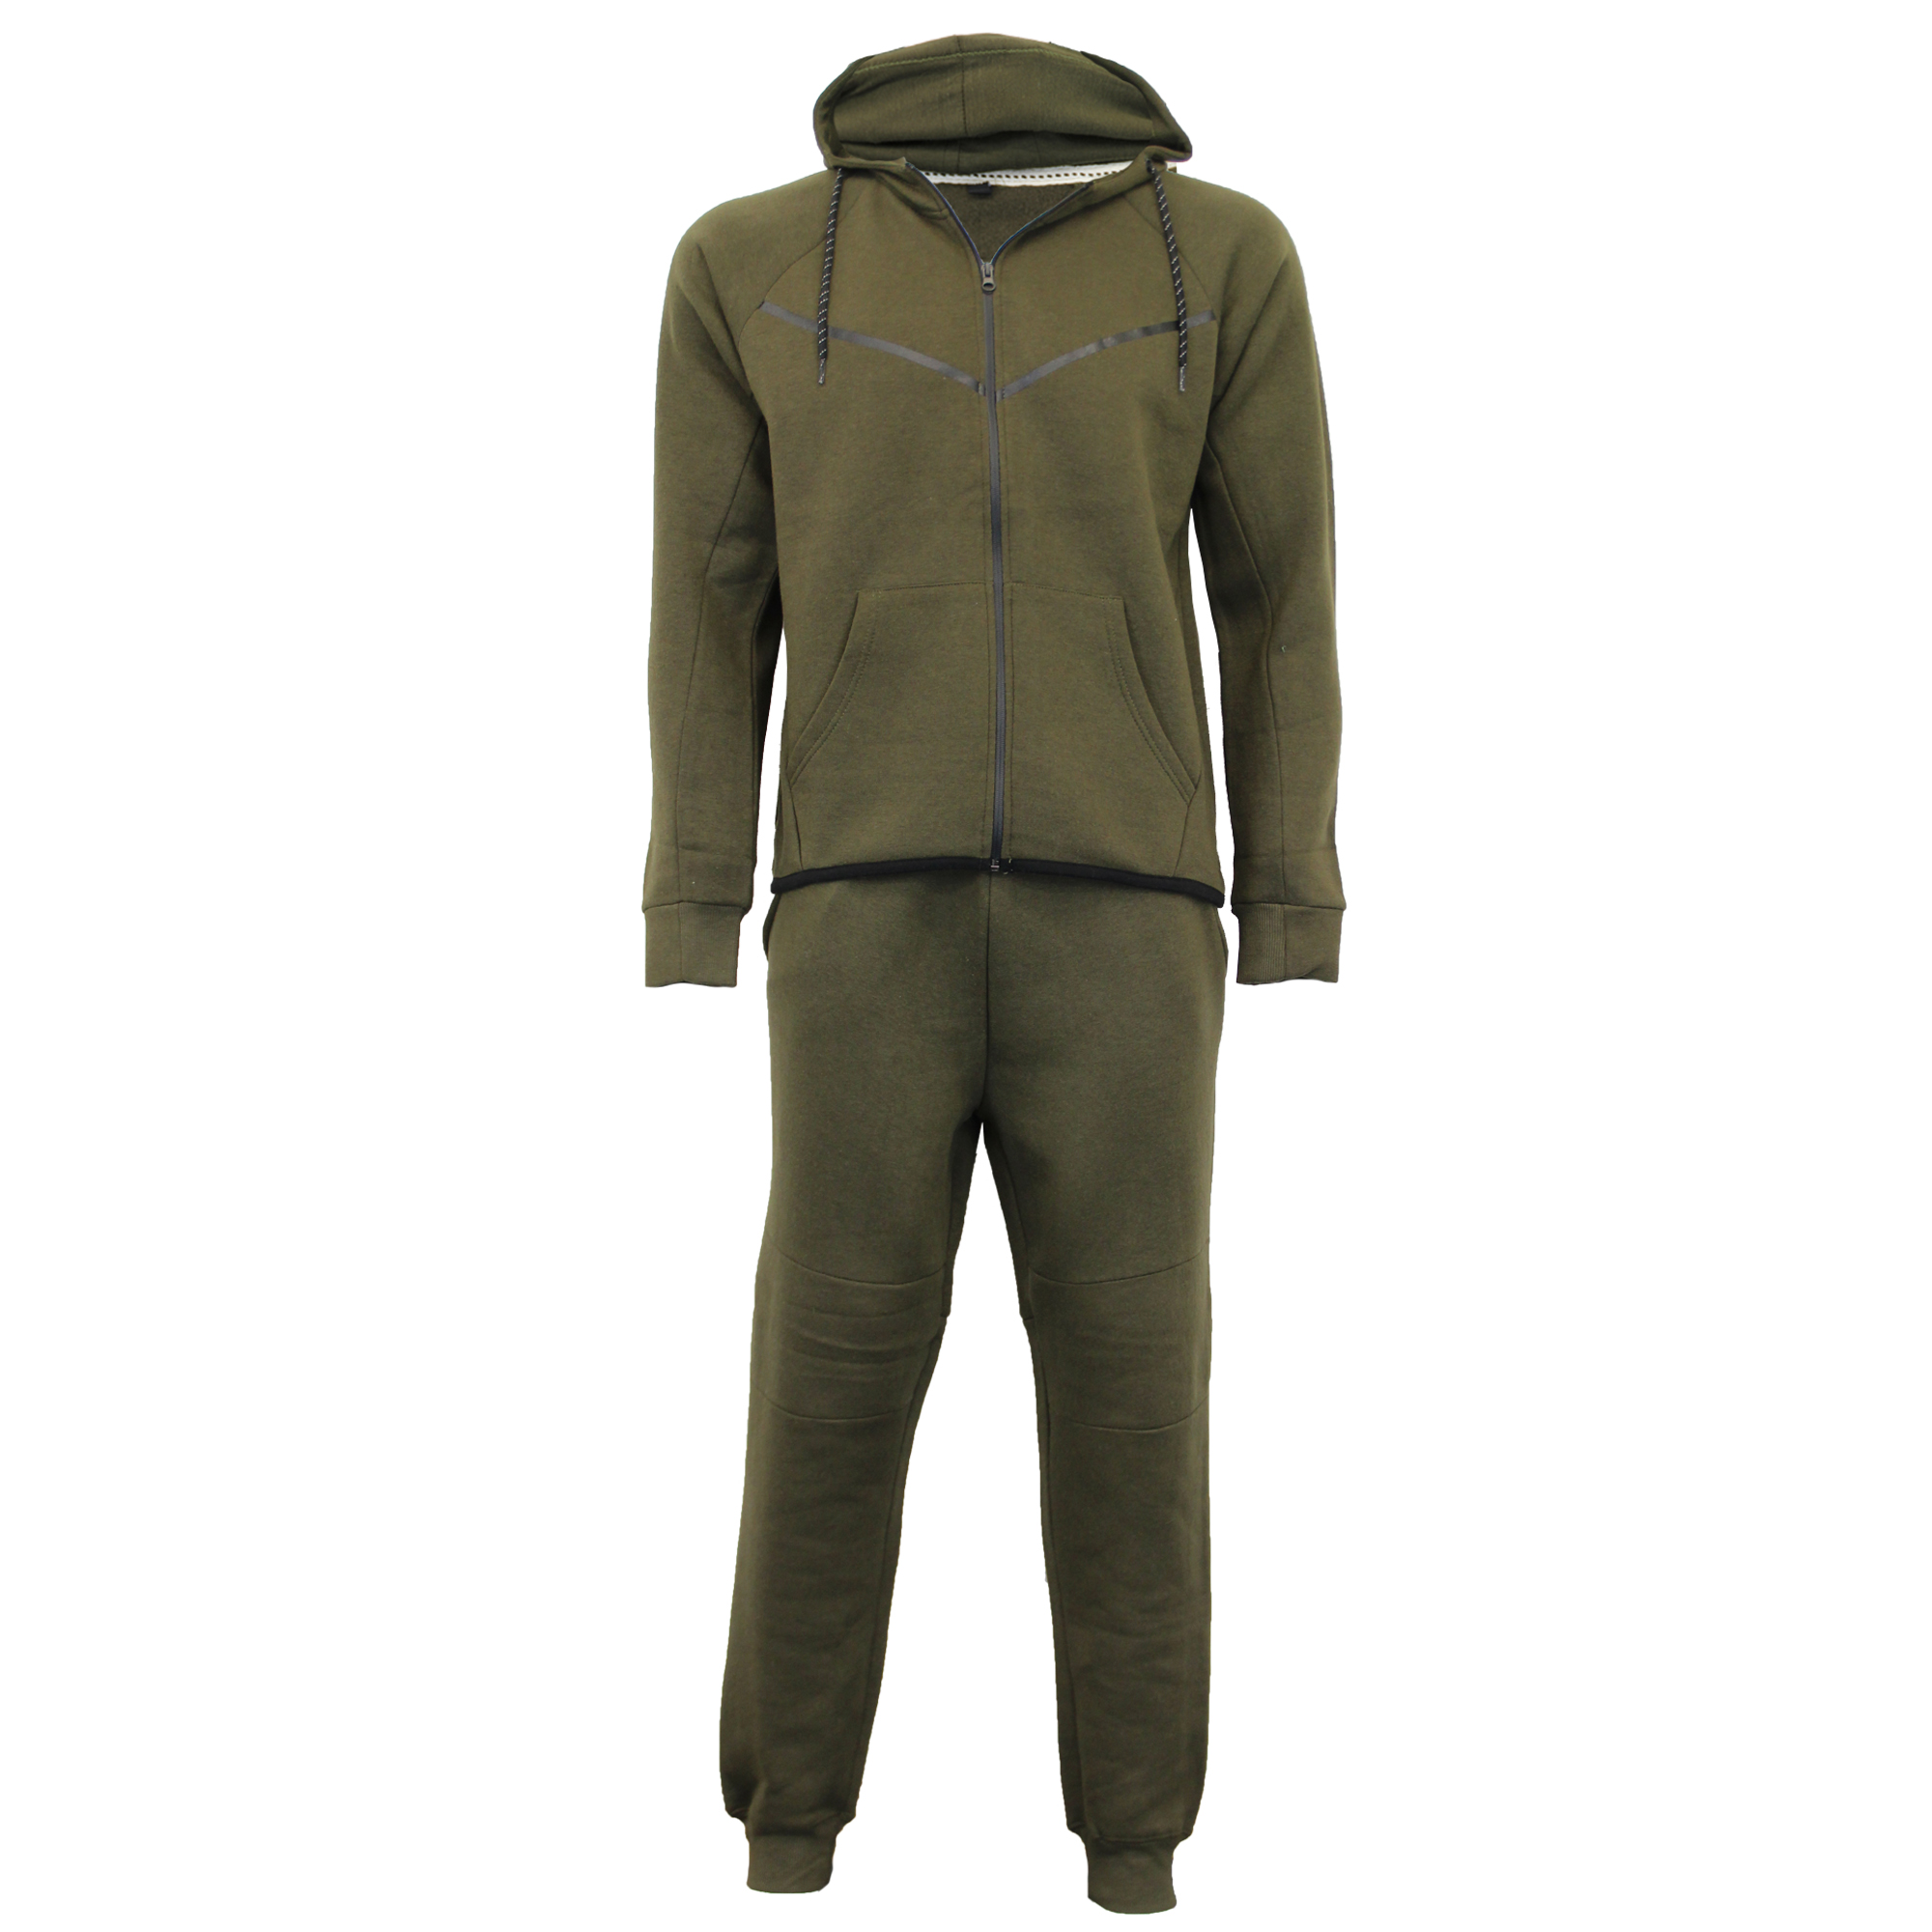 Enfants-Garcons-Survetement-Haut-a-Capuche-Sweat-Shirt-Bas-Pantalon-de-Jogging